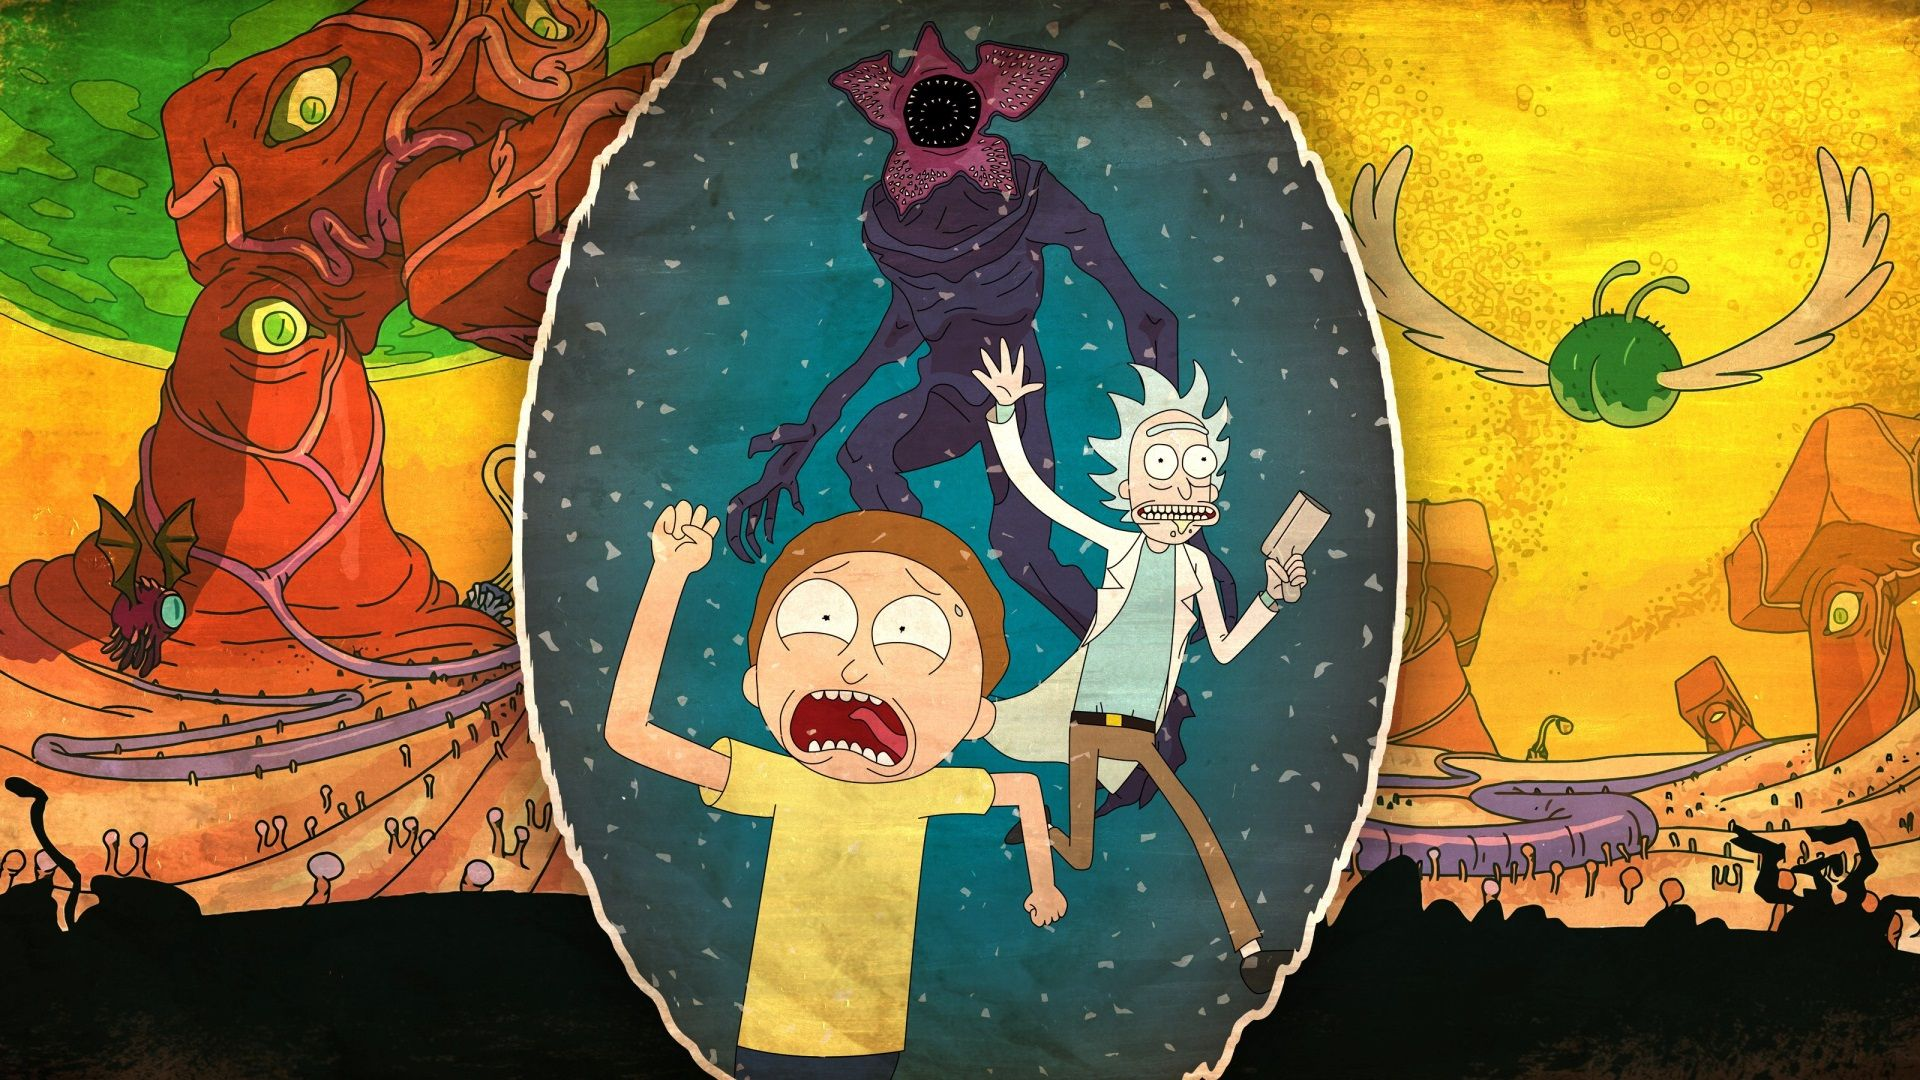 1920x1080 Rick And Morty Amazing Wallpaper Image Cartoon Wallpaper Morty Smith Rick And Morty